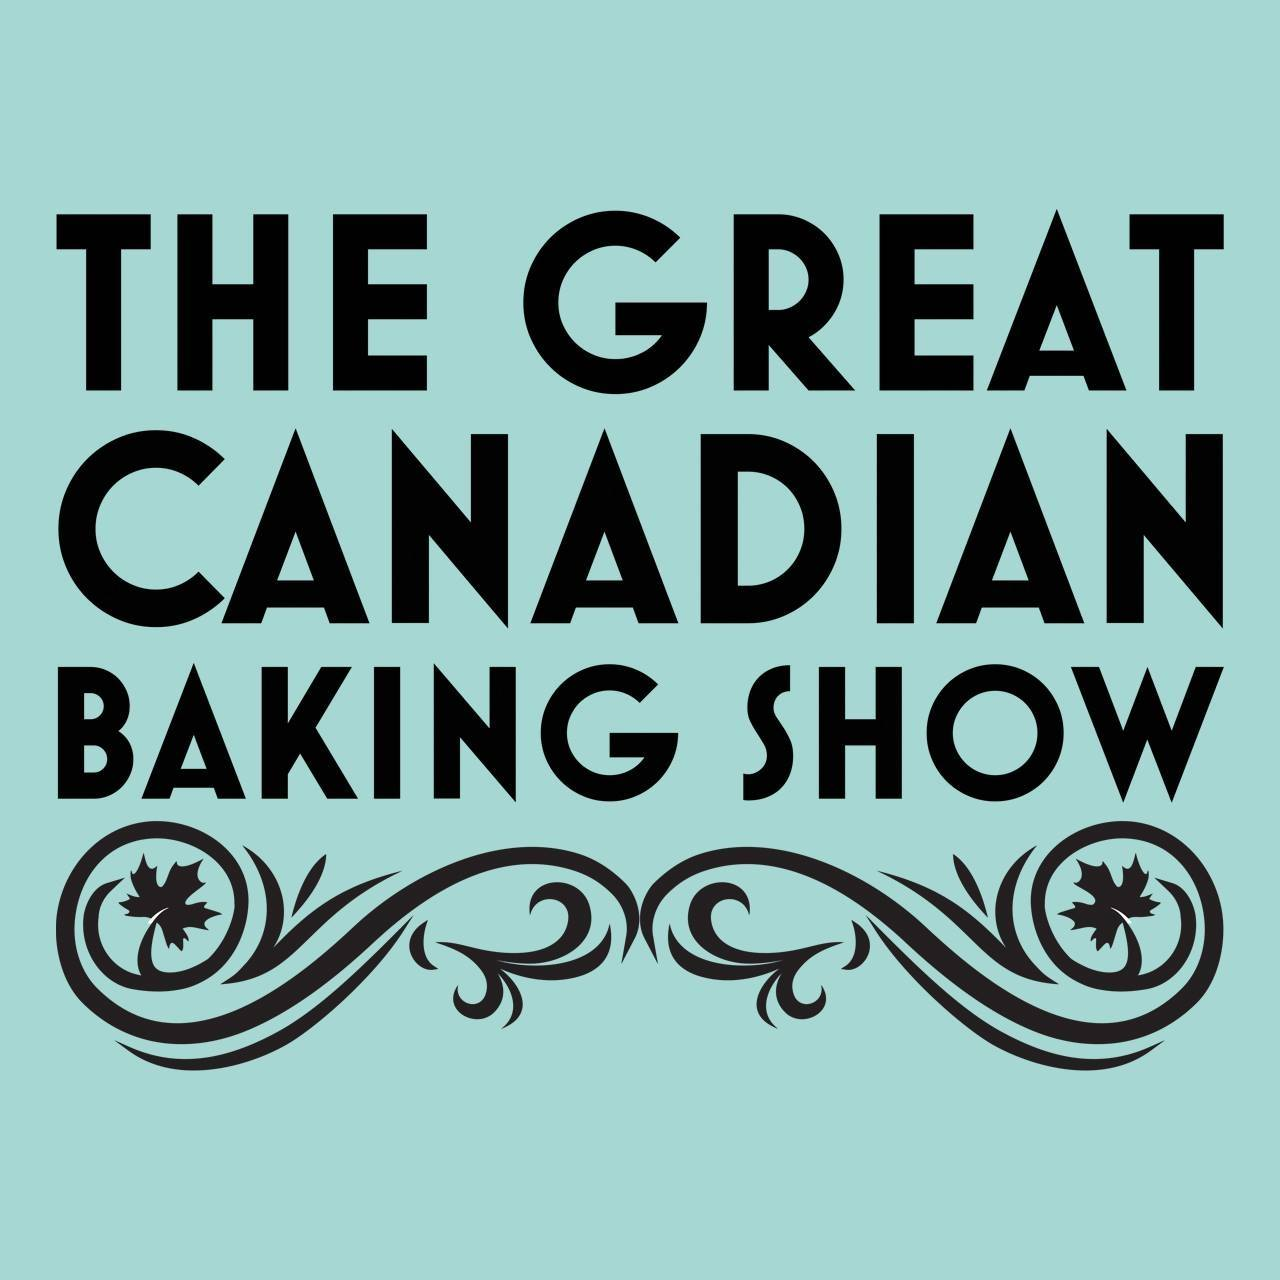 The Great Canadian Baking Show (TV Series 2017– ) - IMDb